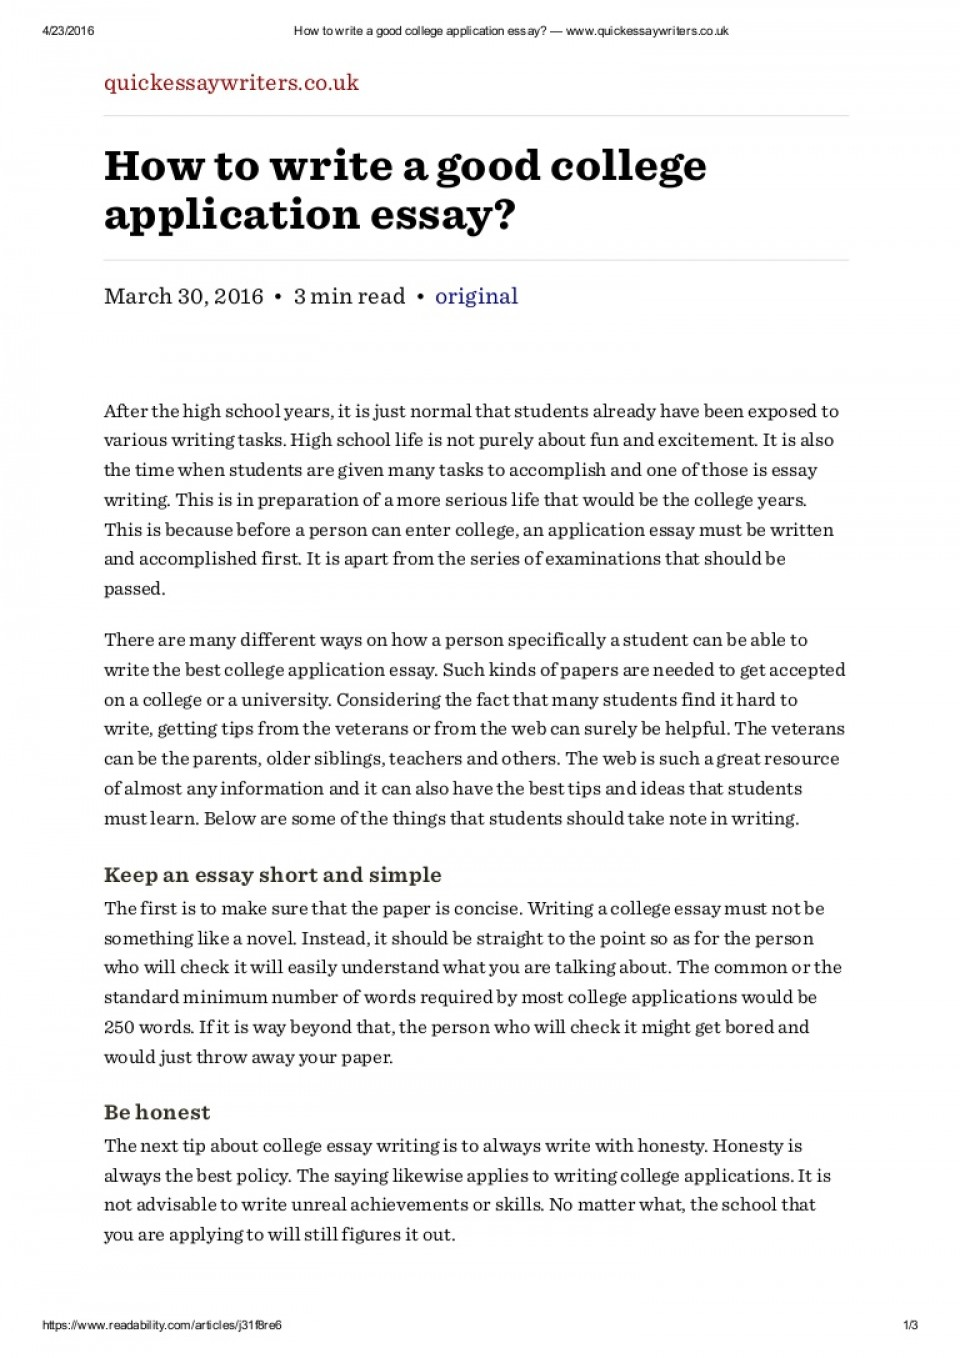 002 Howtowriteagoodcollegeapplicationessaywww Thumbnail Essay Example Writing College Application Marvelous Essays Tips For Level Admission Sample Guide To 960